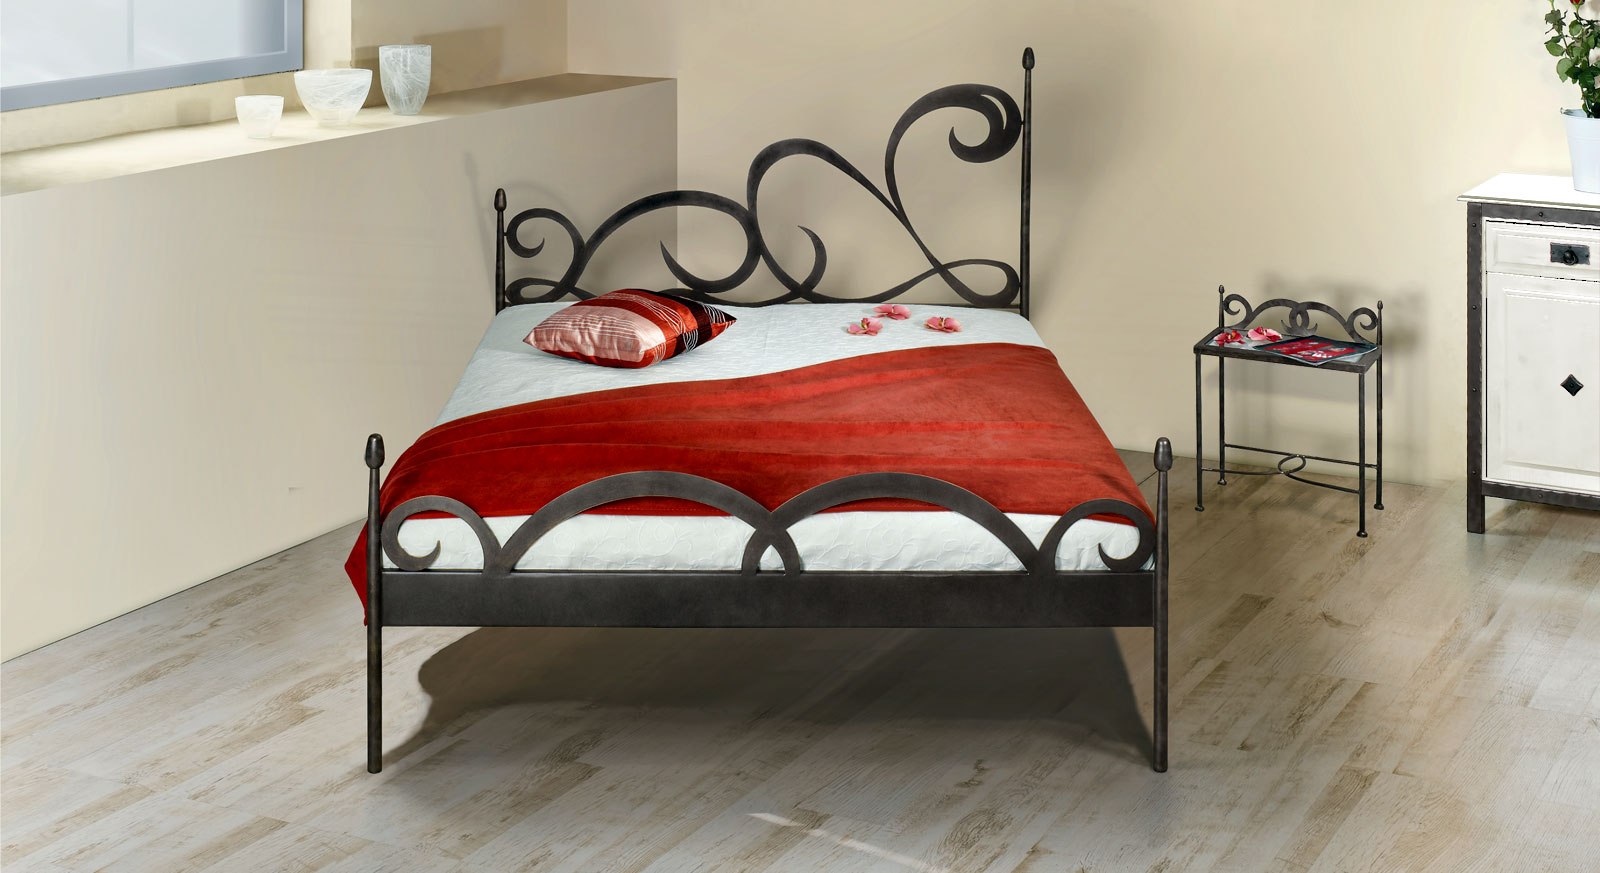 stylisches metallbett z b 180x200 cm in braun temco. Black Bedroom Furniture Sets. Home Design Ideas